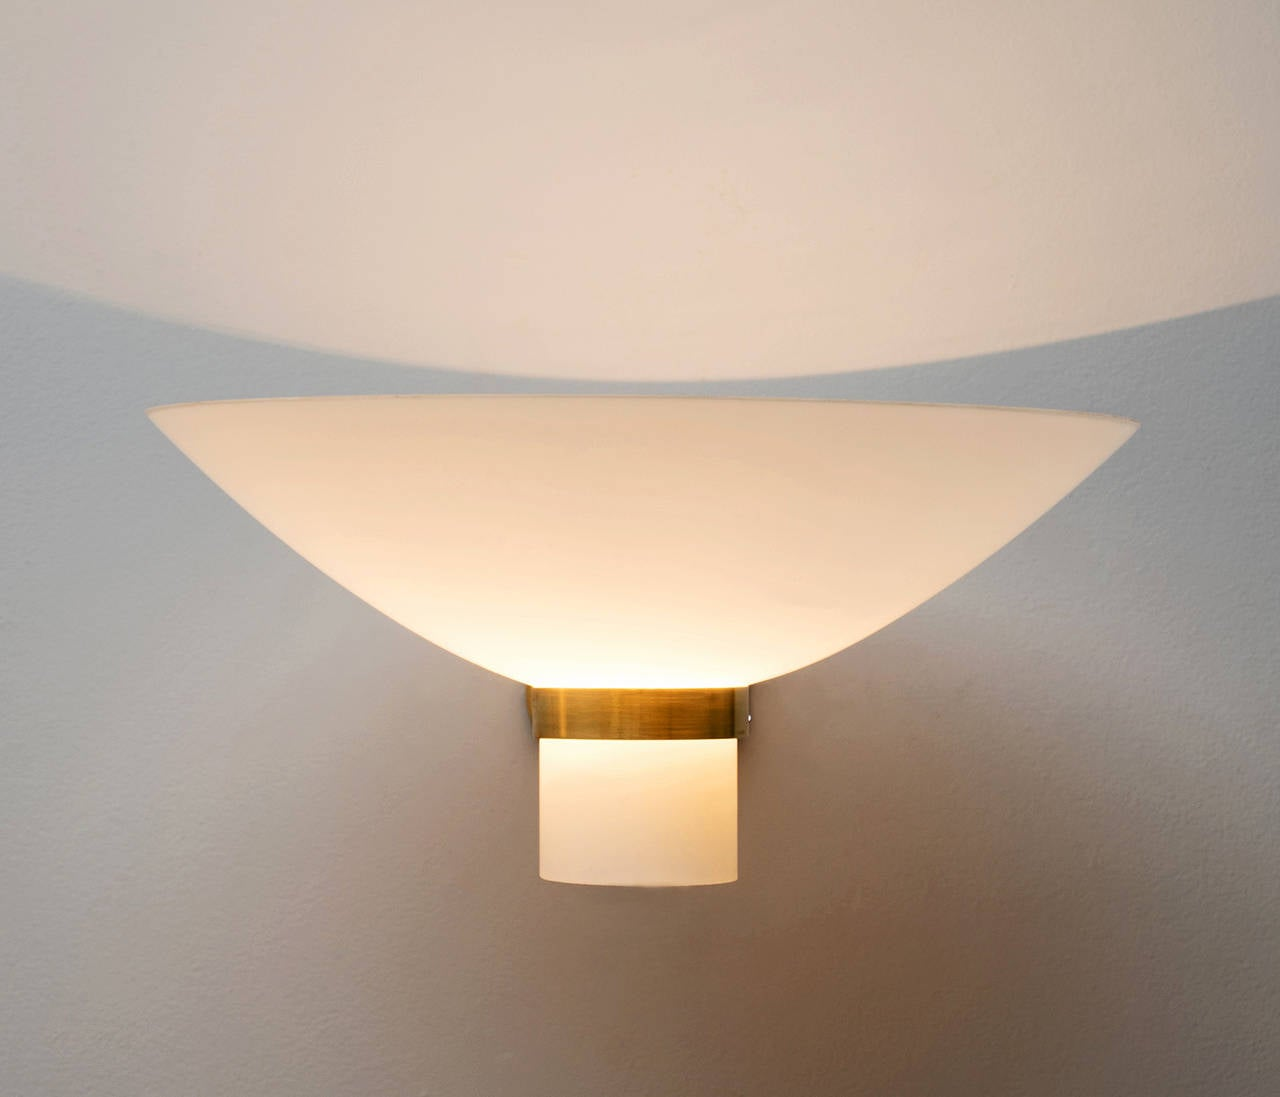 1 Large wall light by Lyfa, solid brass and opal glass For Sale at 1stdibs